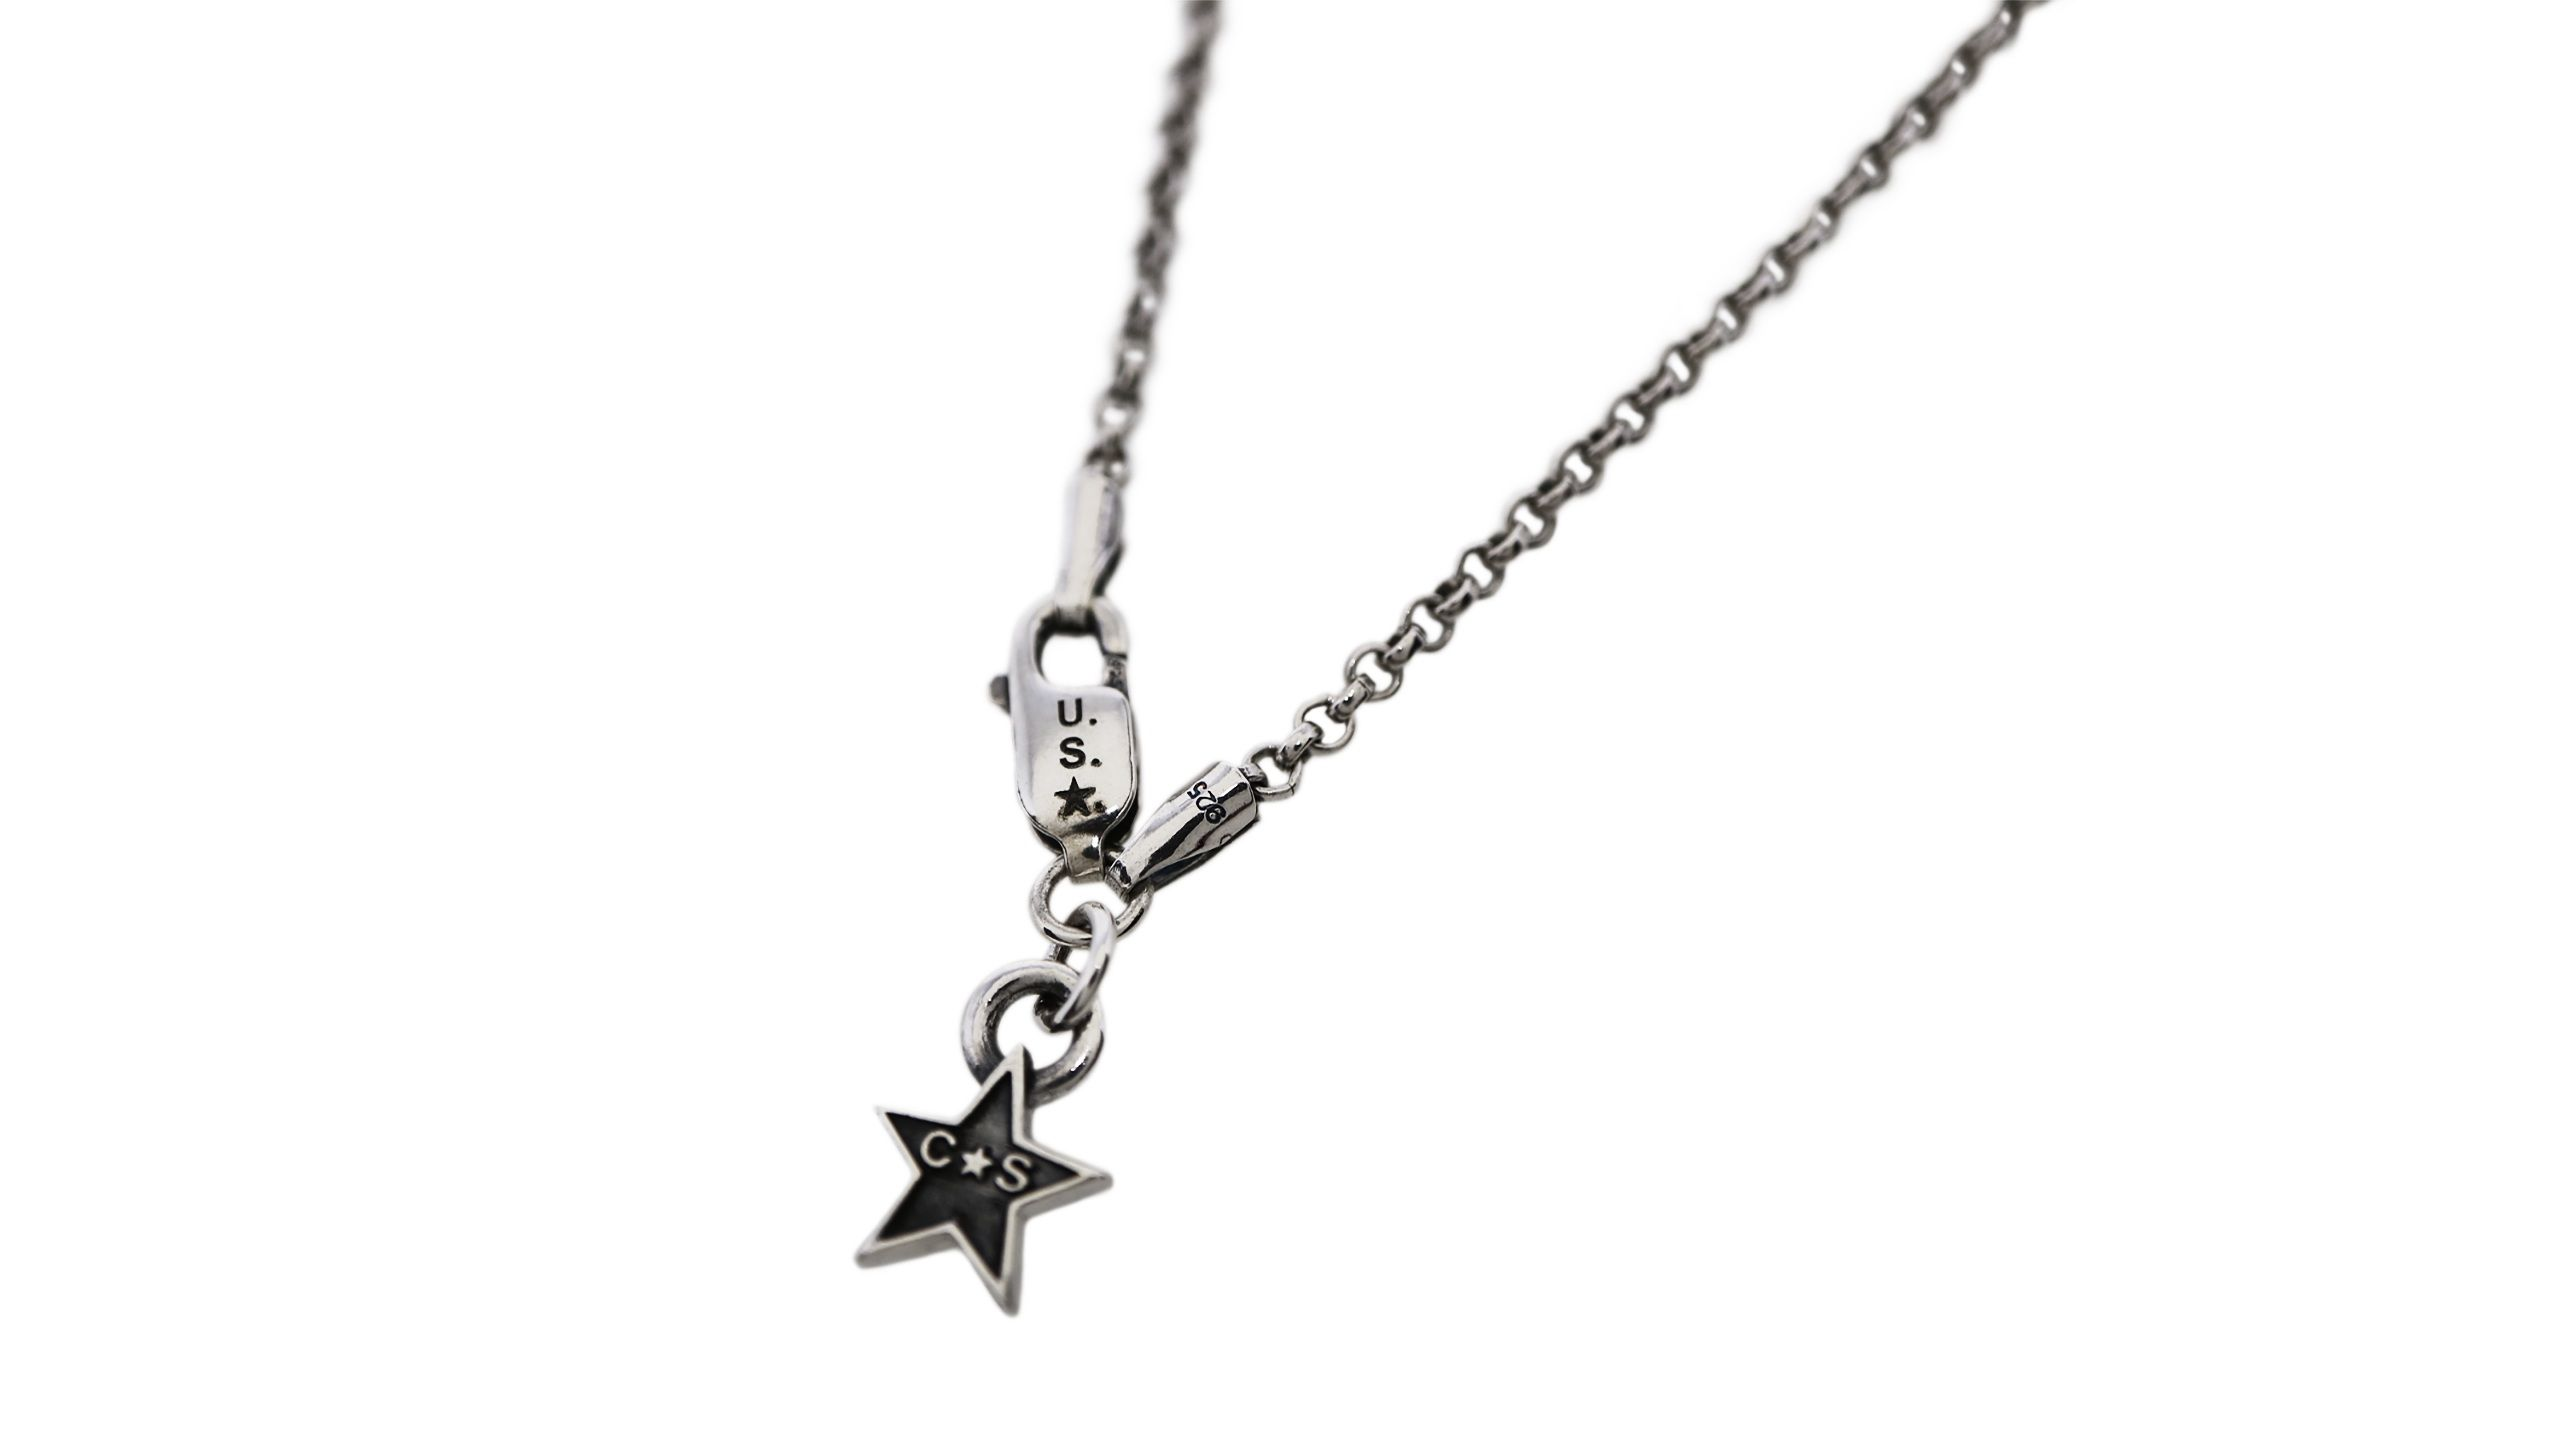 CS TINY STAR LOGO CHAIN (16 inch)  [USD $300]